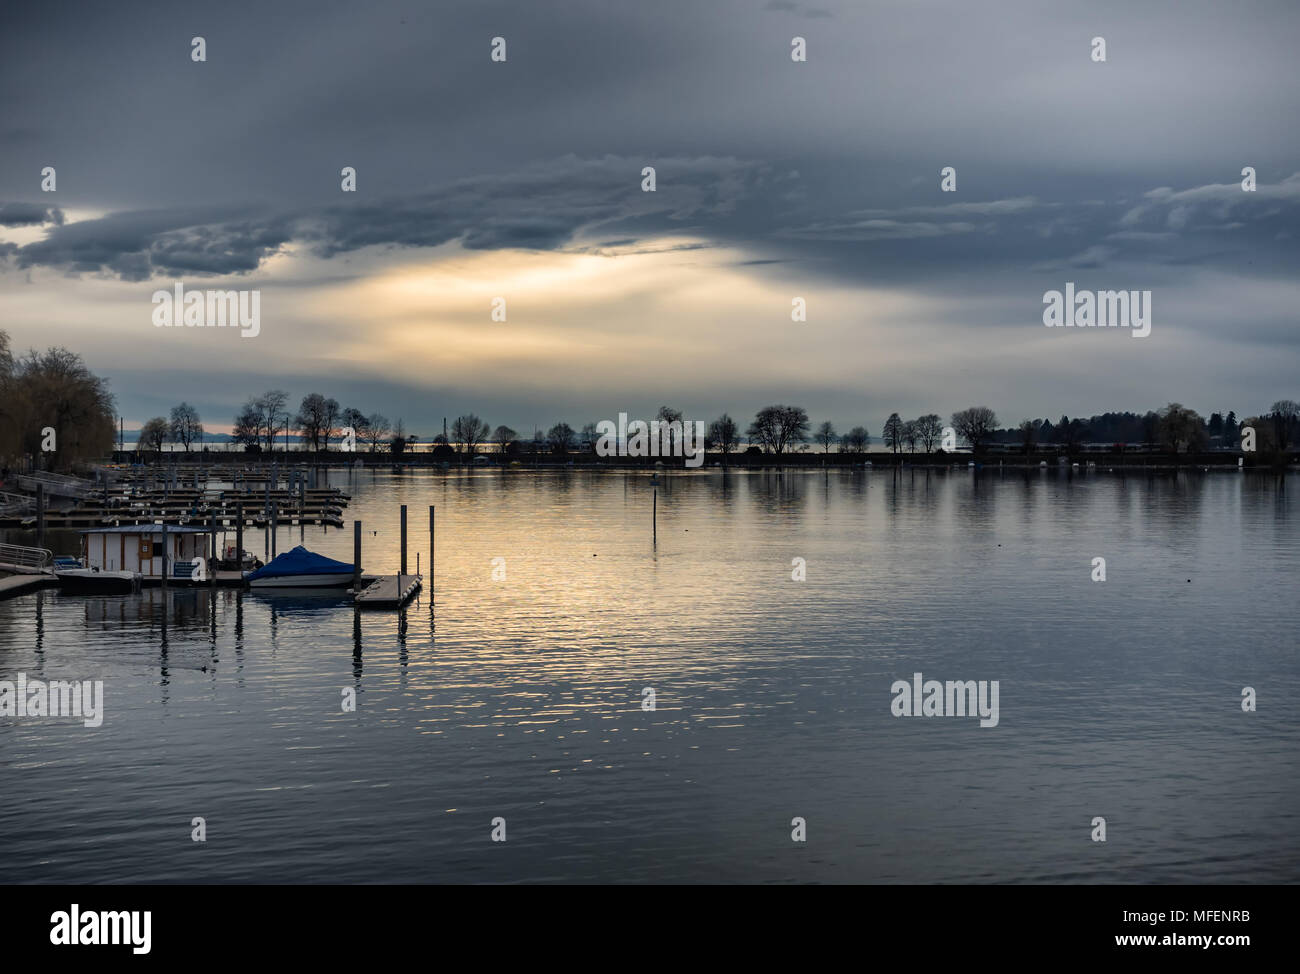 Sunset at the Bodensee in Lindau, Germany Stock Photo